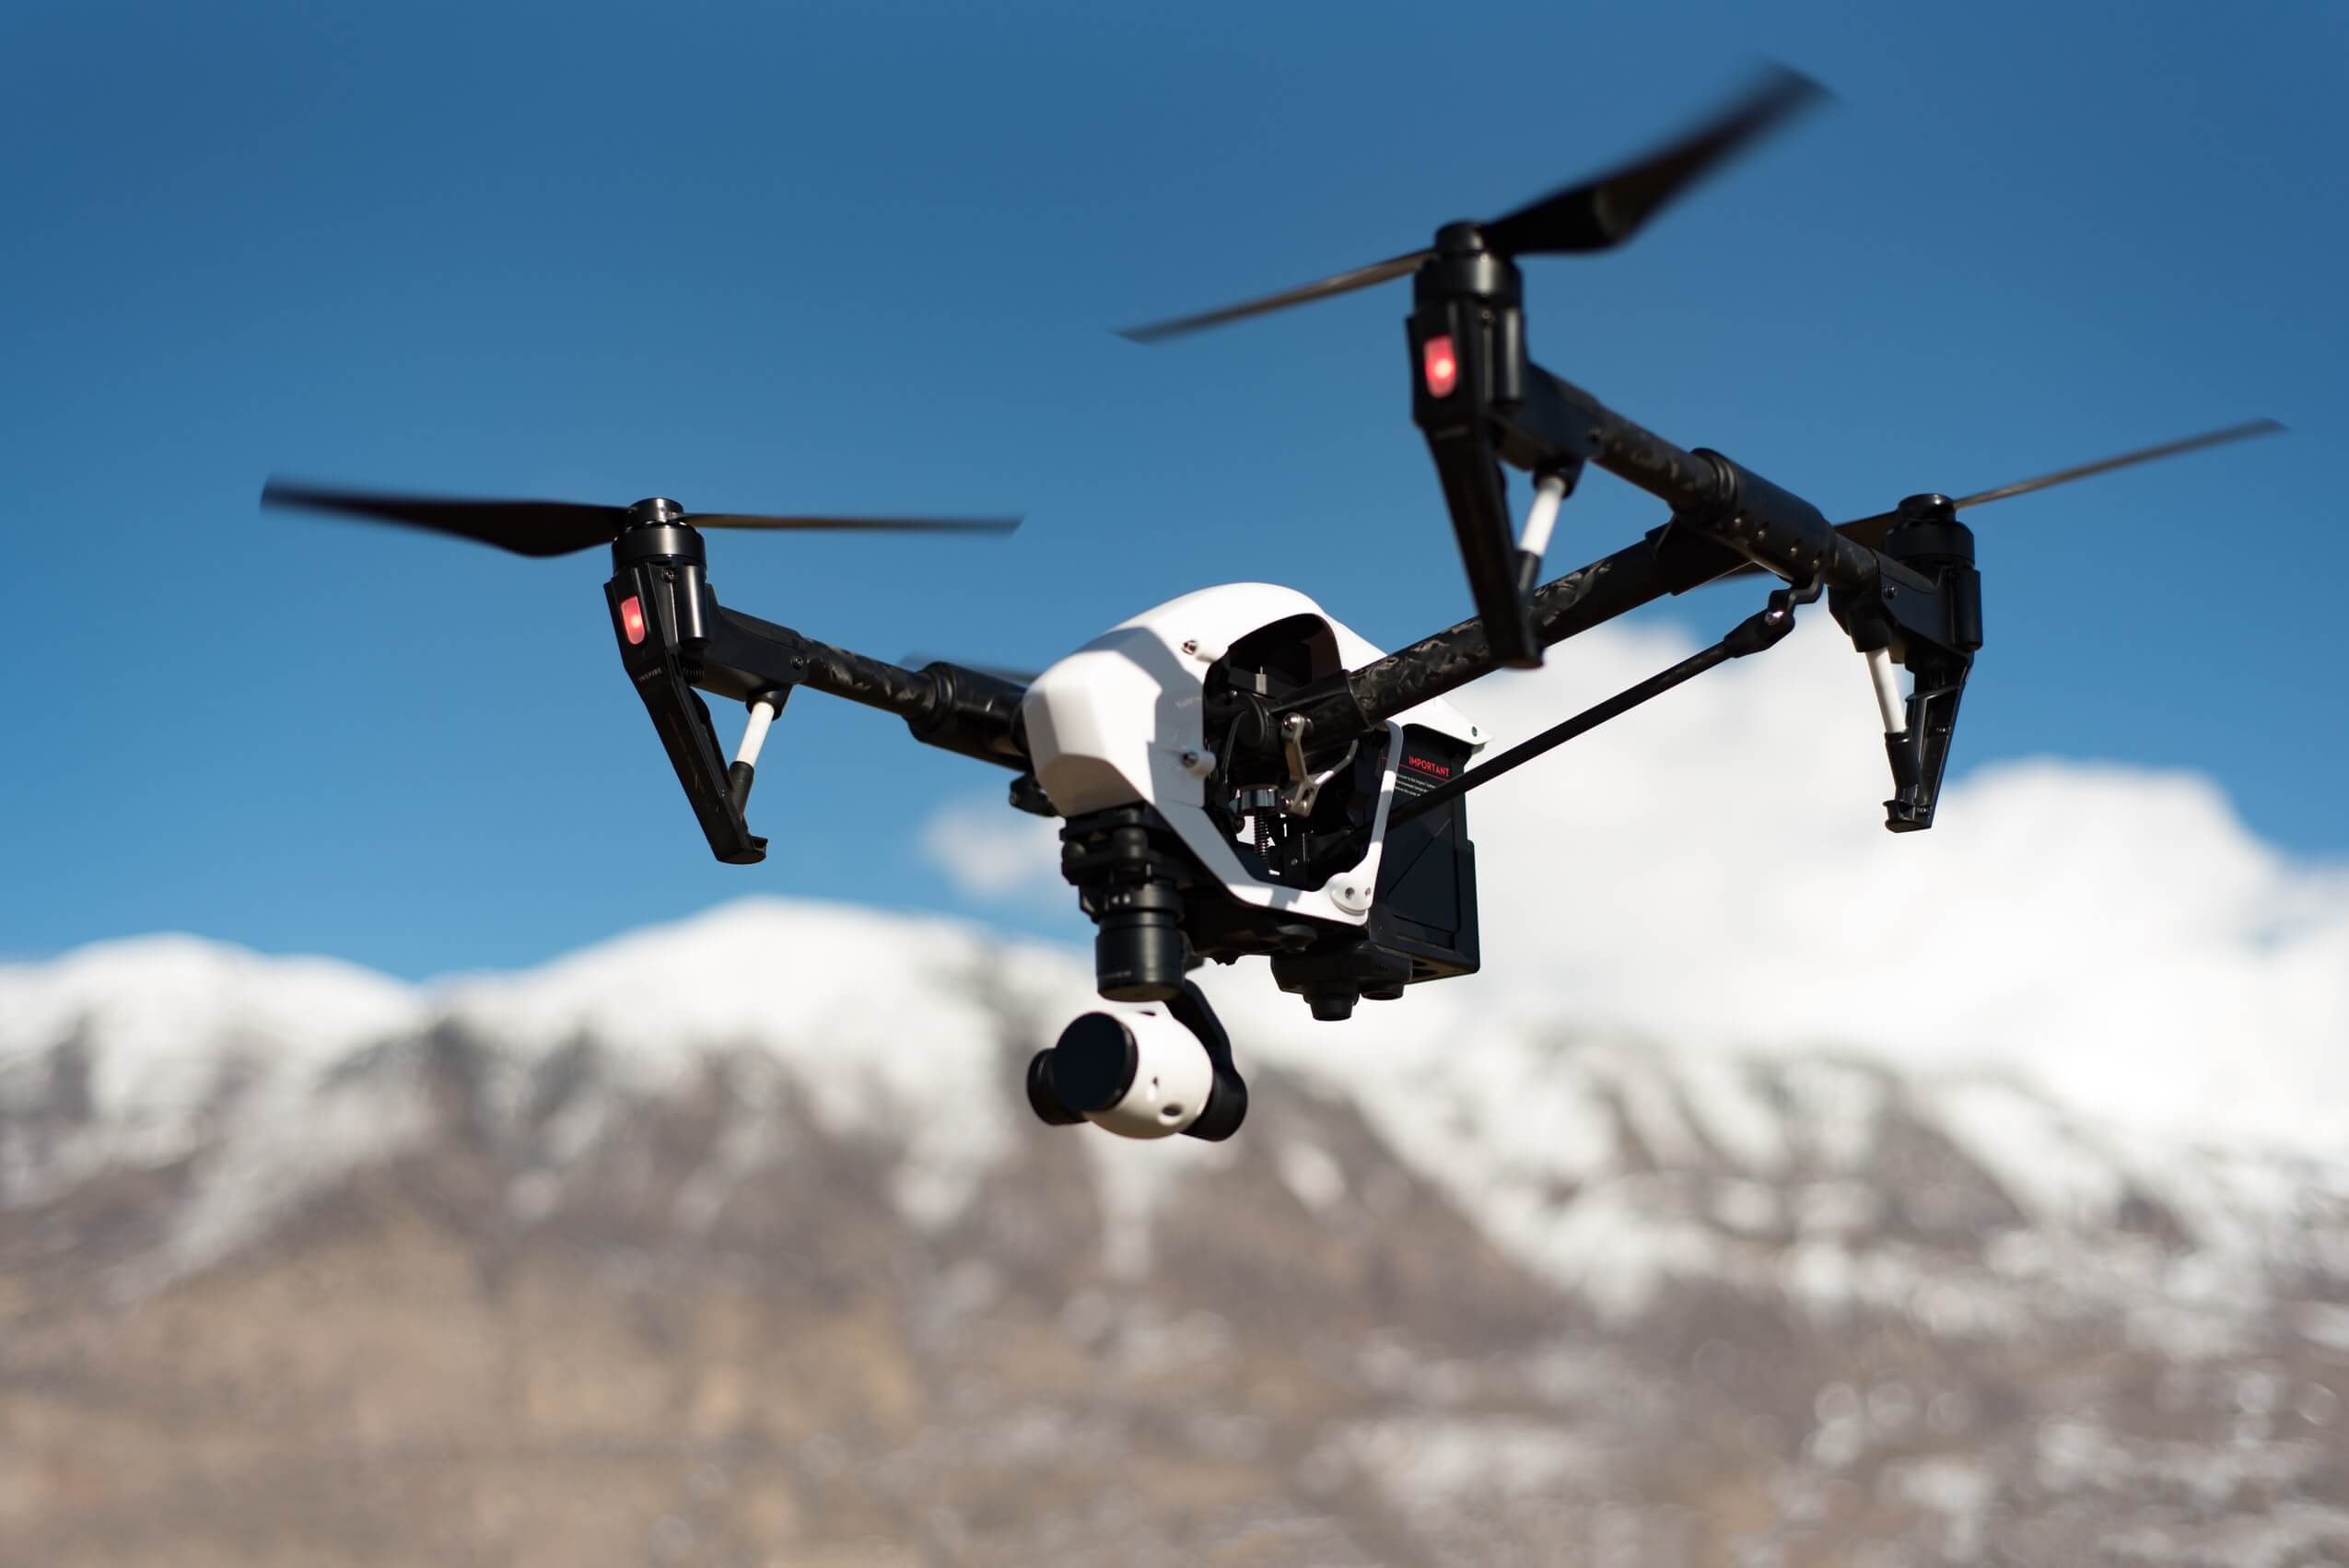 Carbon fiber drone flying near snowy mountains